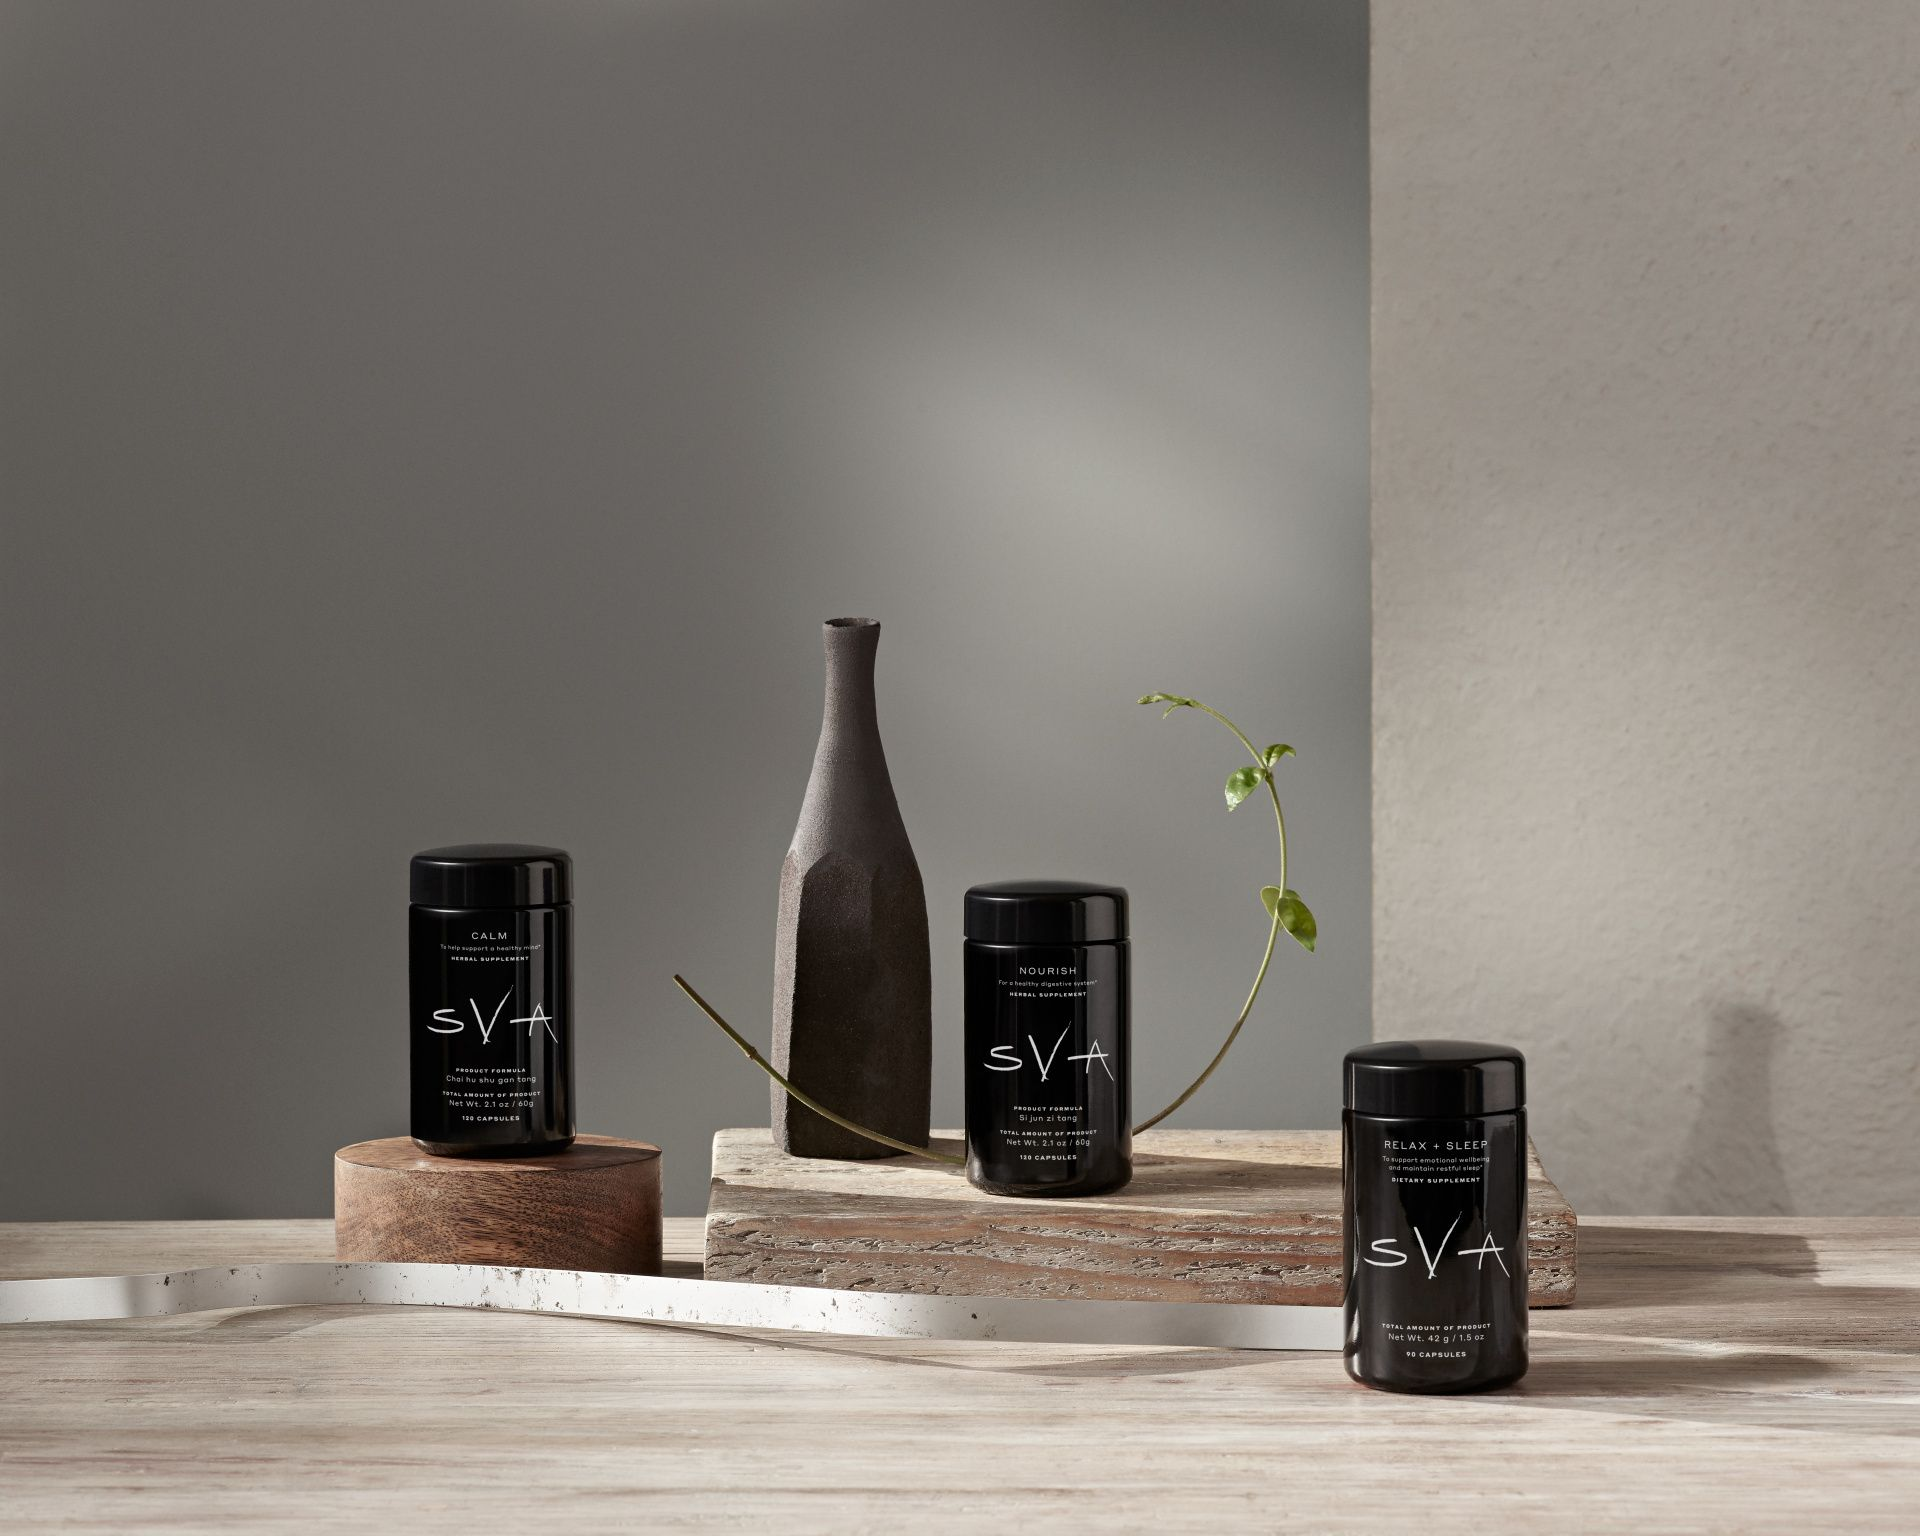 Tatler Exclusive: Aman Launches SVA, a New Line of Wellness Supplements